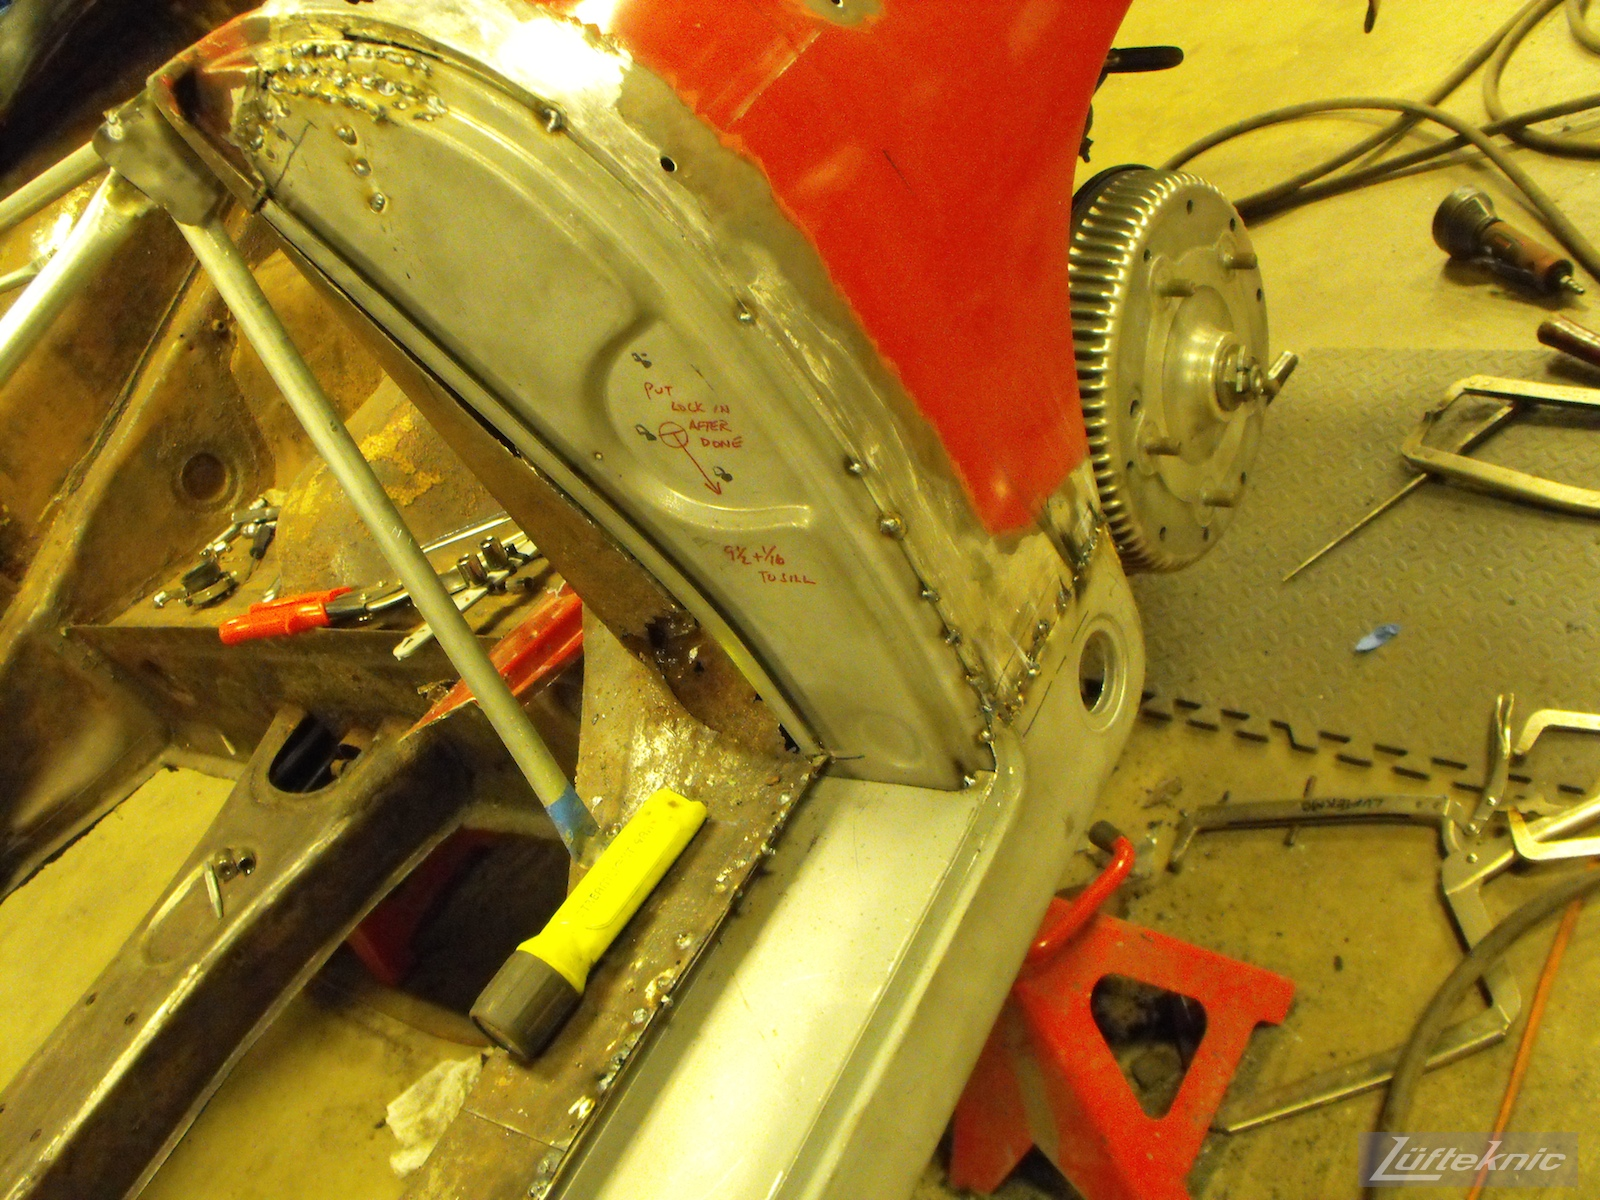 New panels welded into place on a 1961 Porsche 356B Roadster restoration.